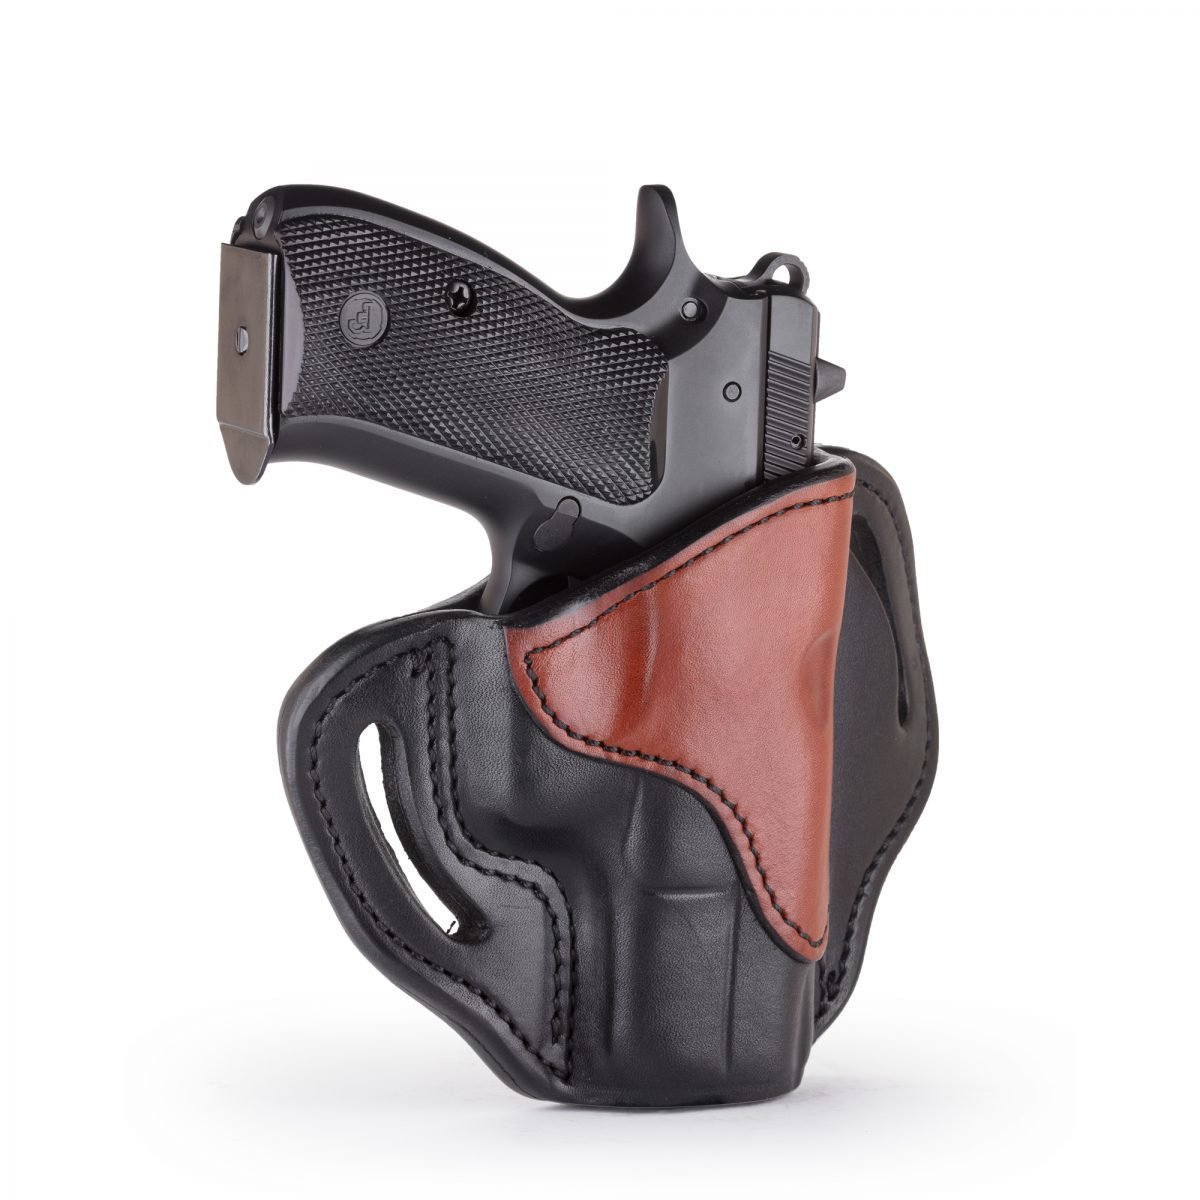 BH2 1 – Open Top Multi-Fit Belt Holster 2 1